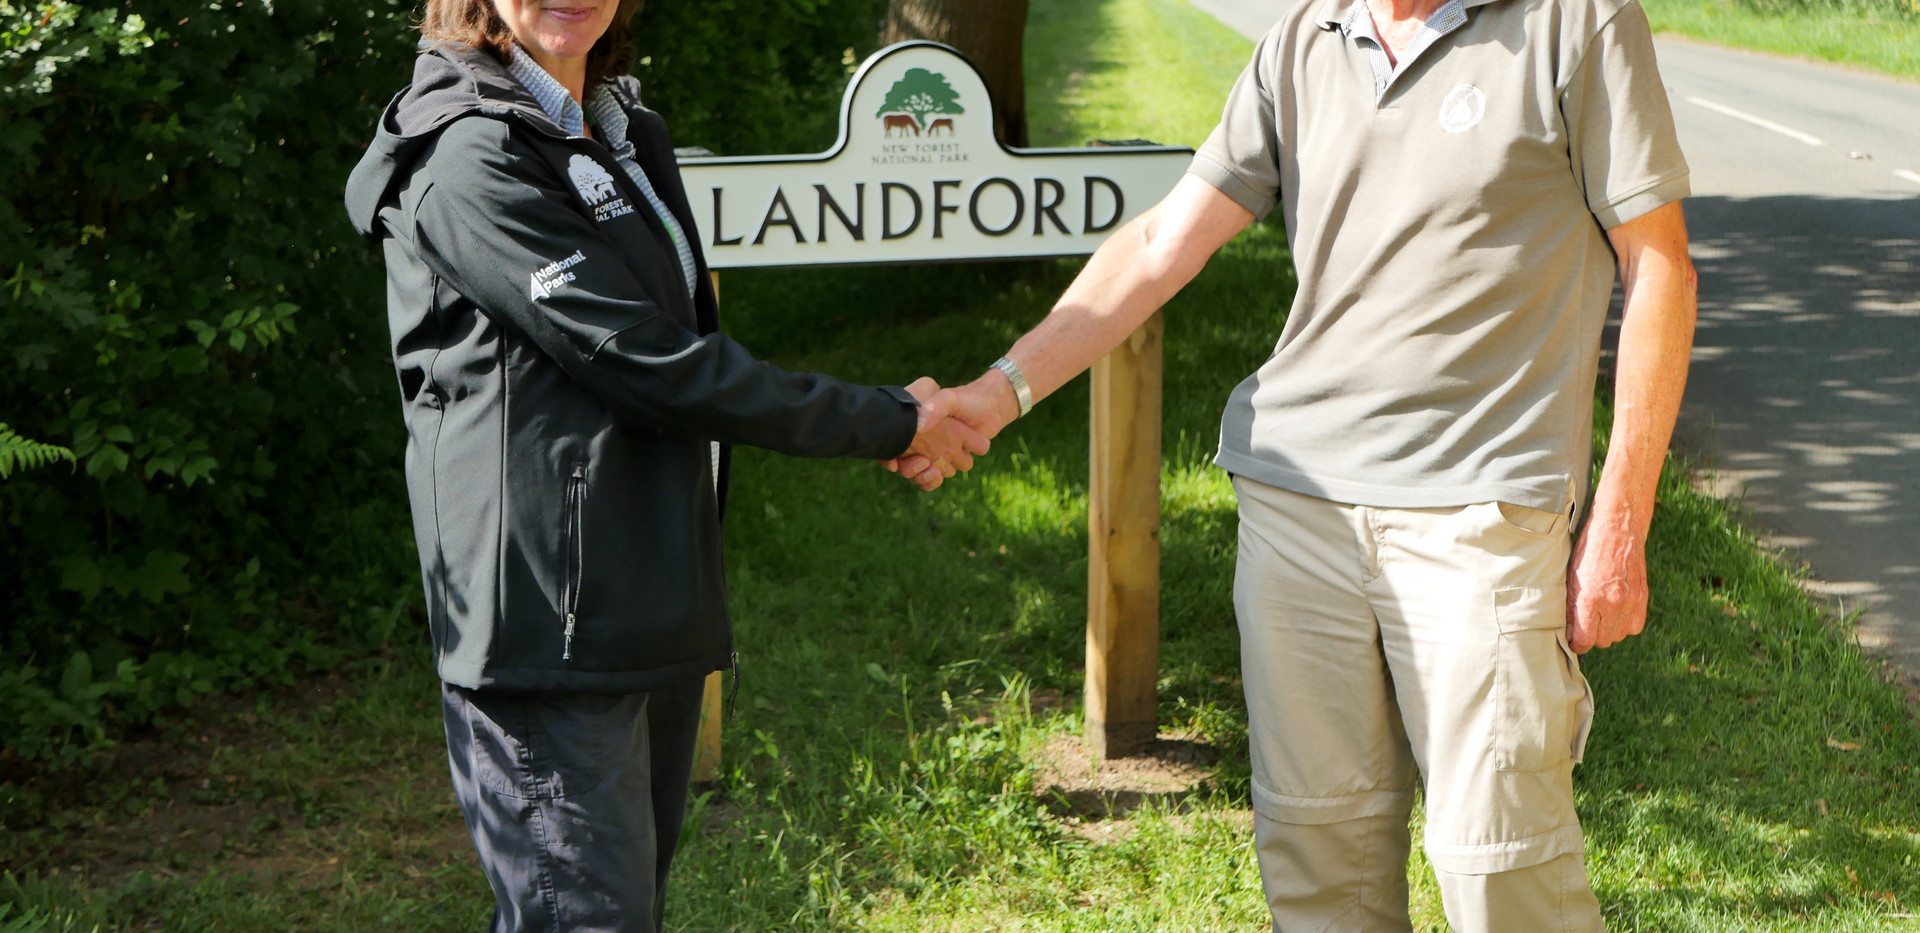 Sarah Kelly from New Forest National Park - congratulates Keith Cameron on a job well done